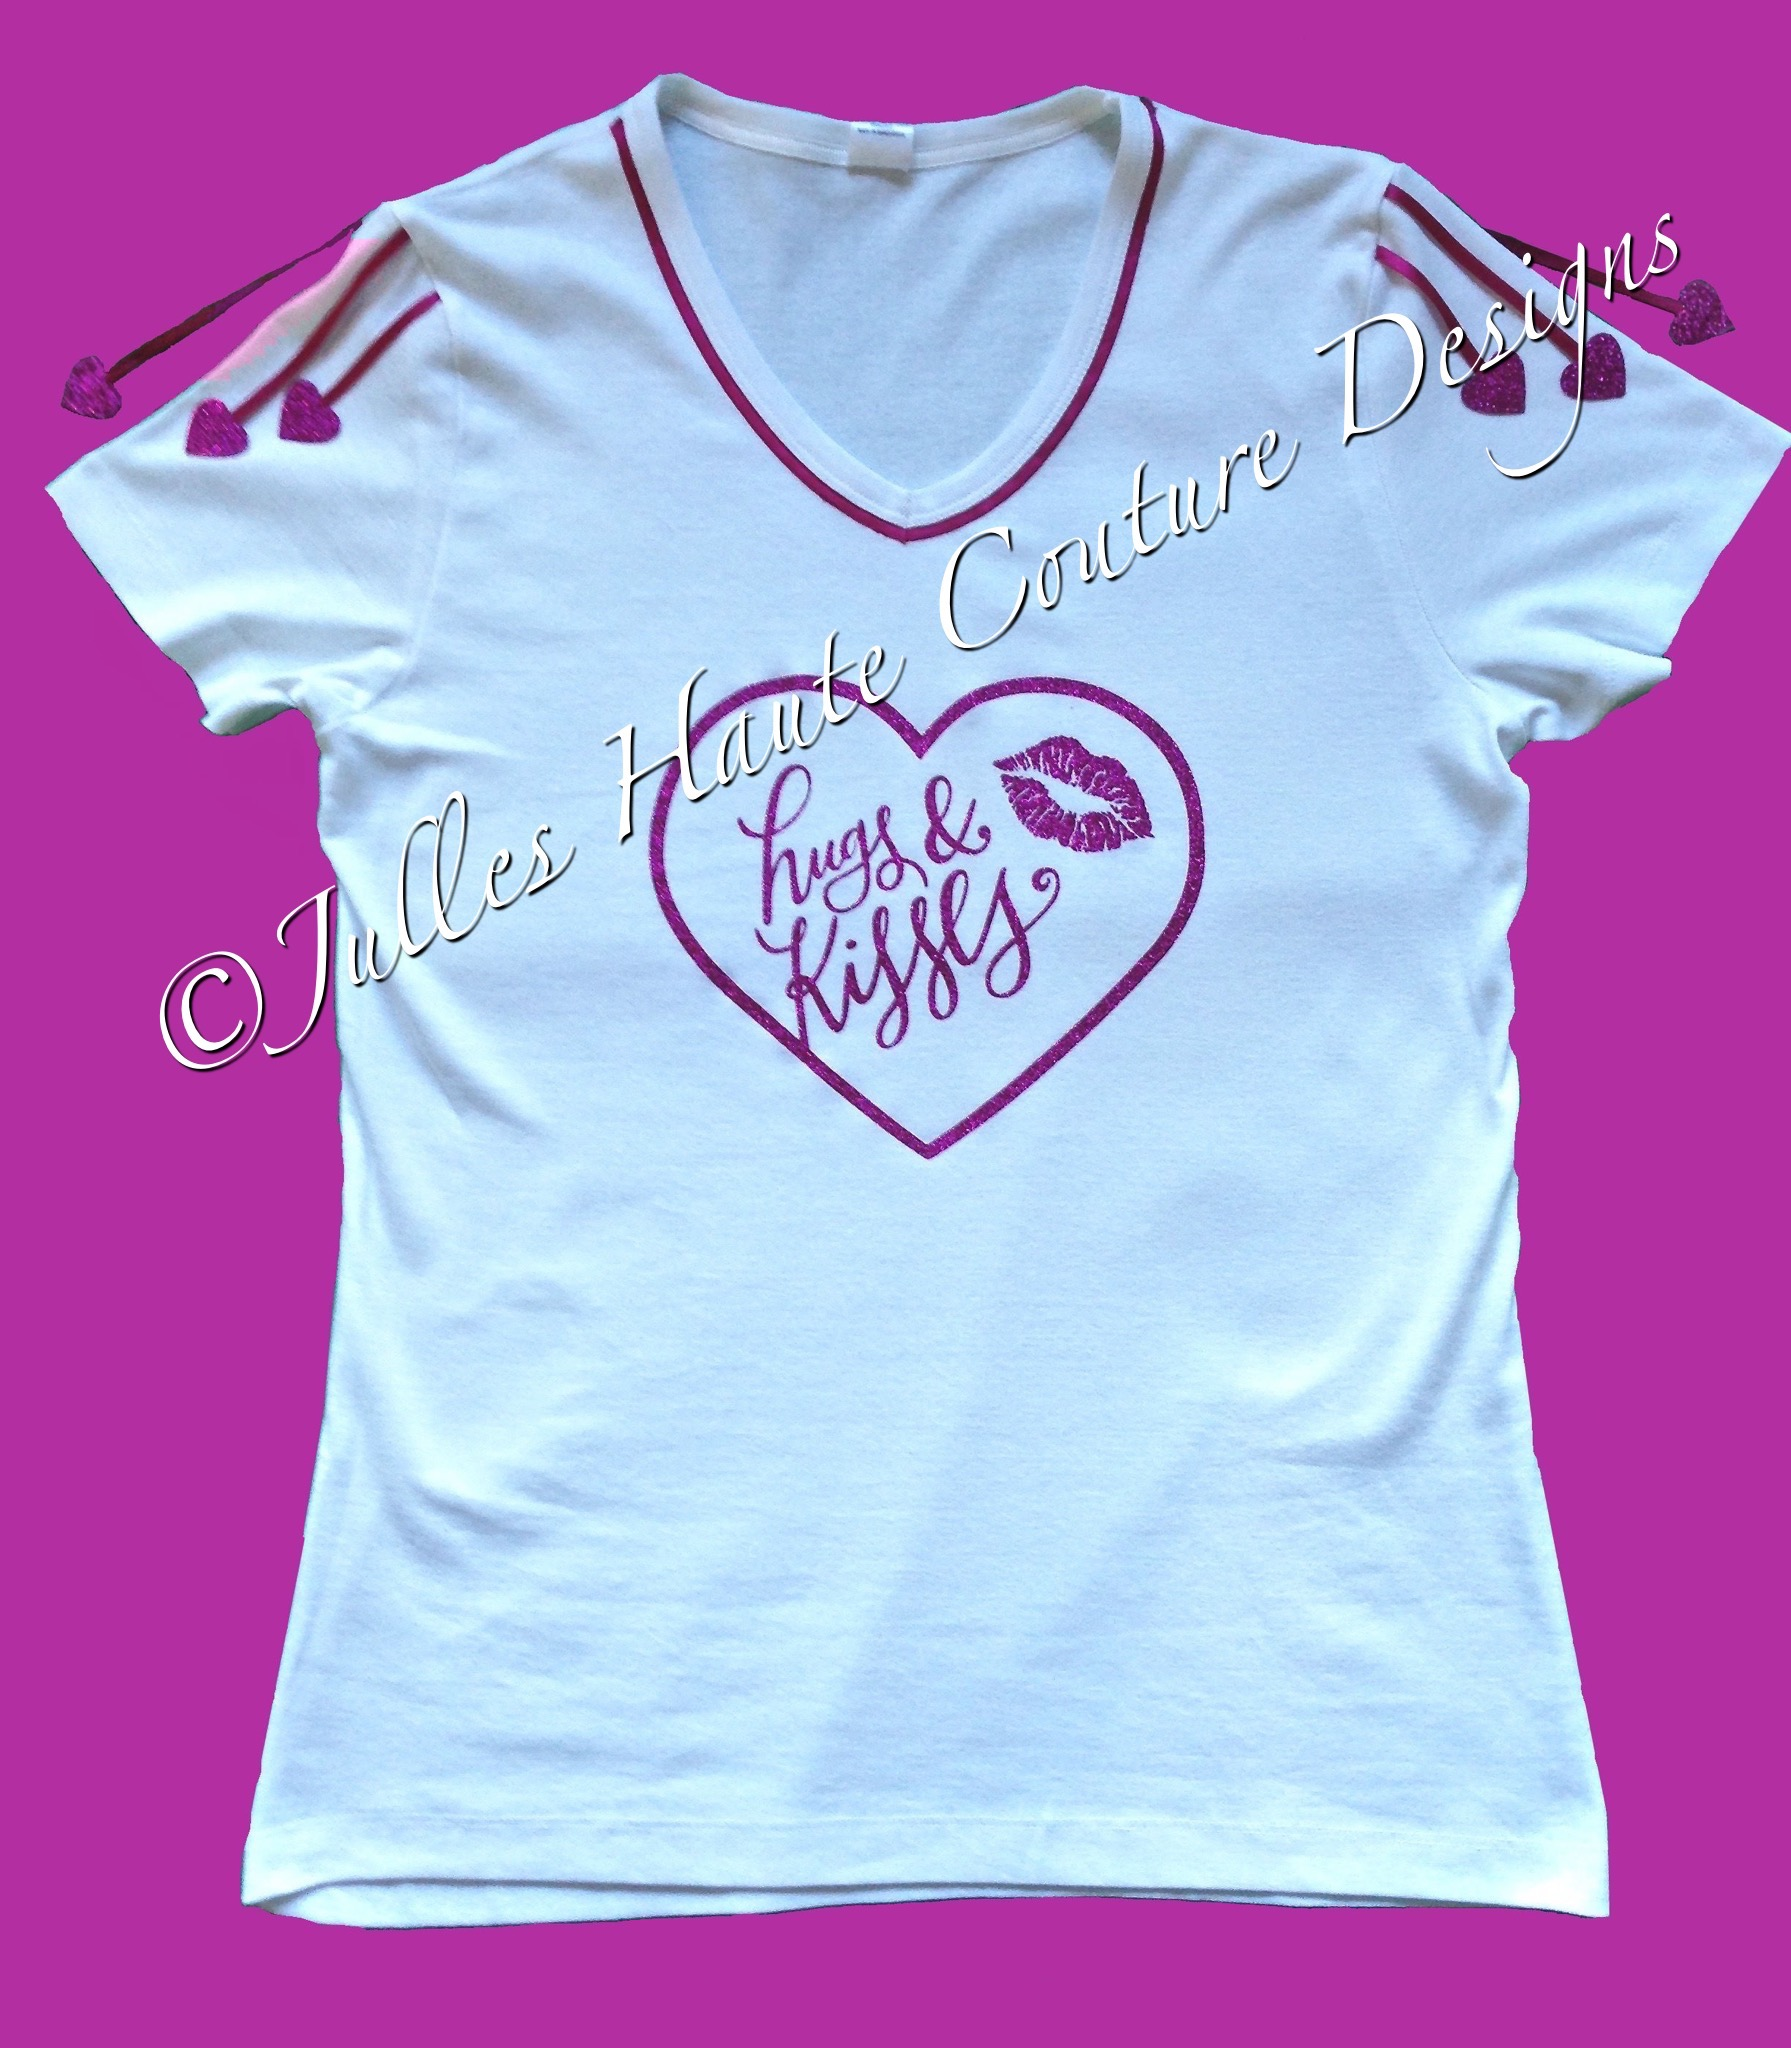 hugs-kisses-t-shirt.jpg